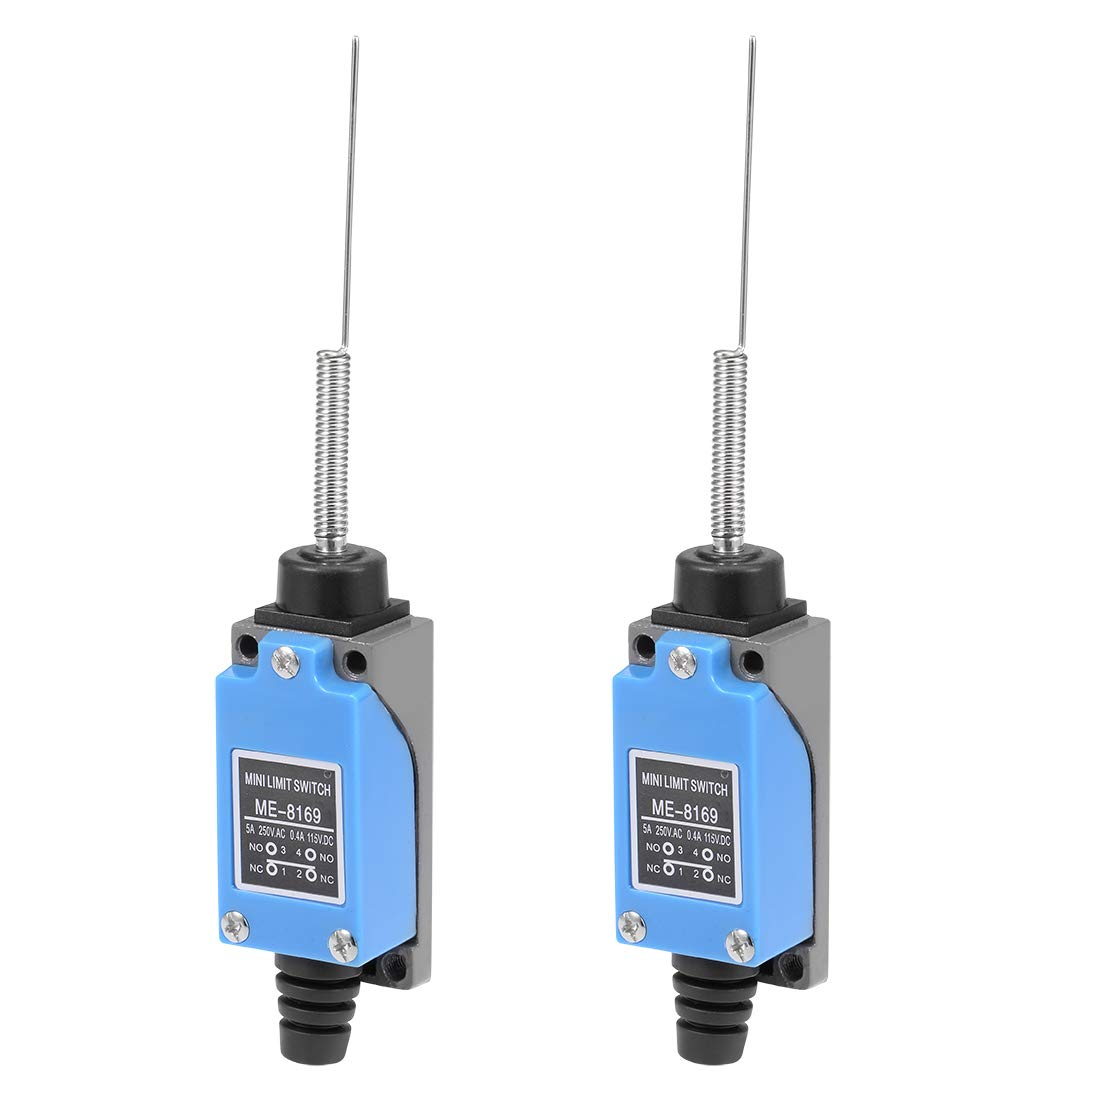 Electrical Buddy Roller Lever Arm Momentary Limit Switch ME-8104 1NC+1NO 2PCS FFC2019